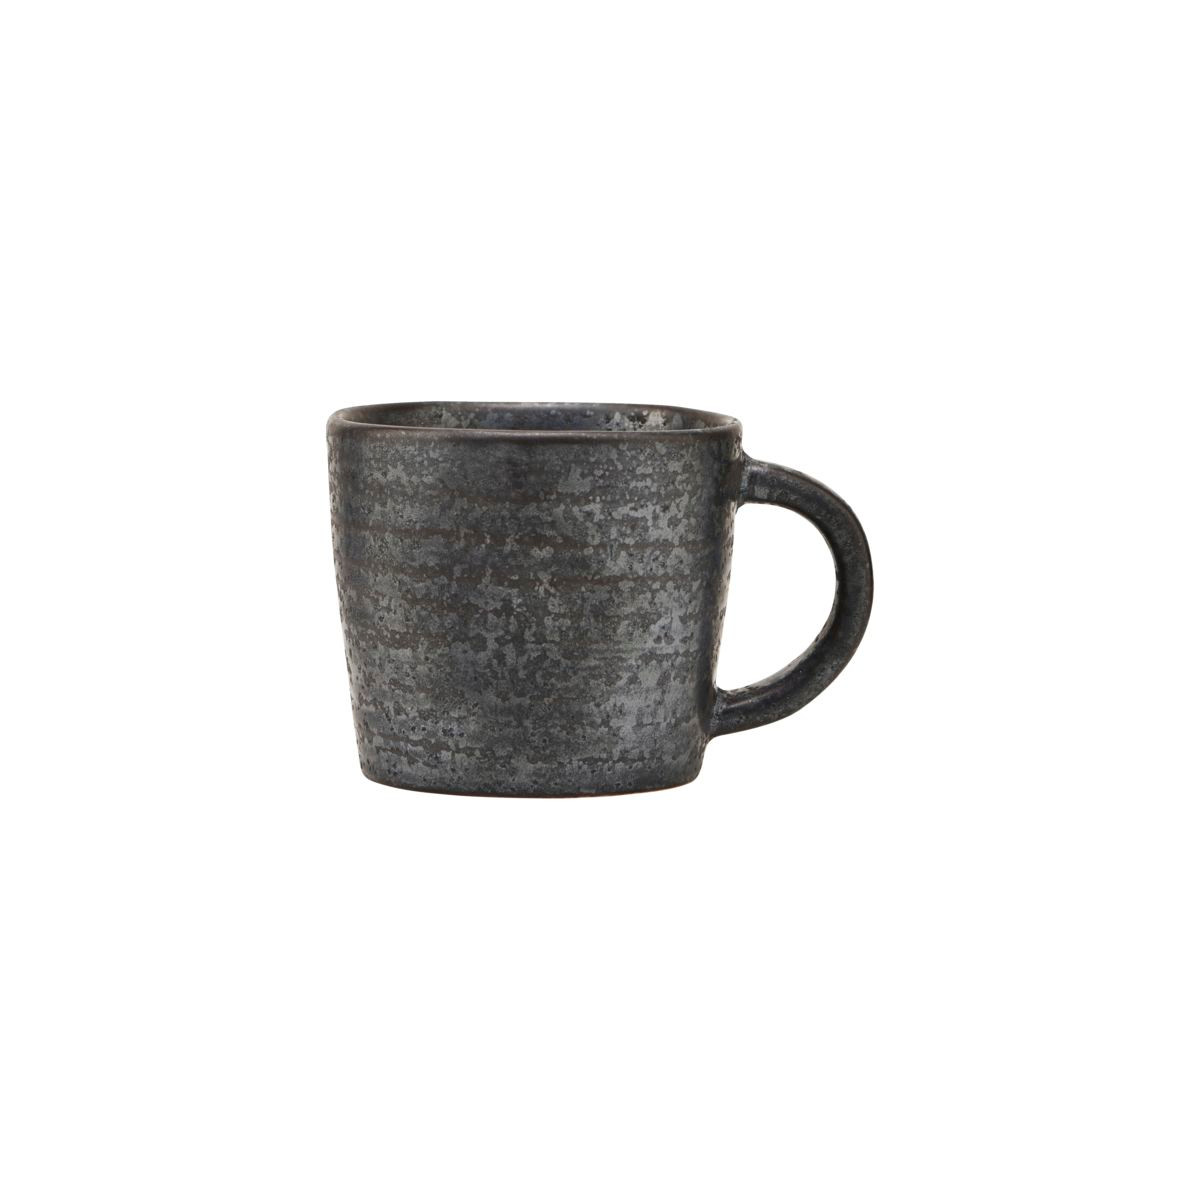 House Doctor Pion Espresso Cup Black/Brown